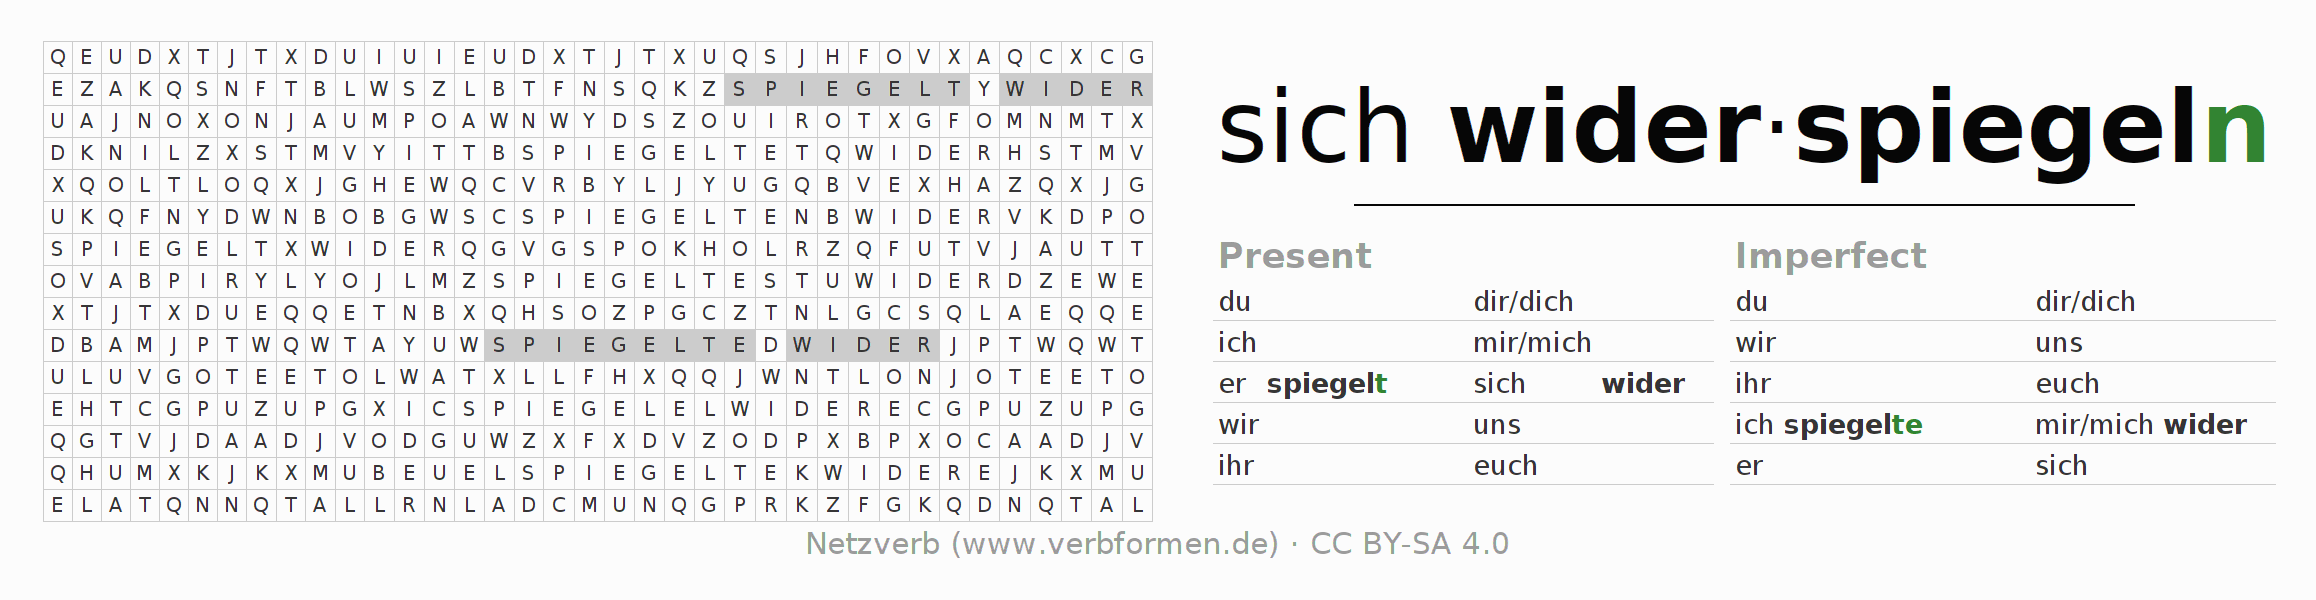 Word search puzzle for the conjugation of the verb sich wider-spiegeln